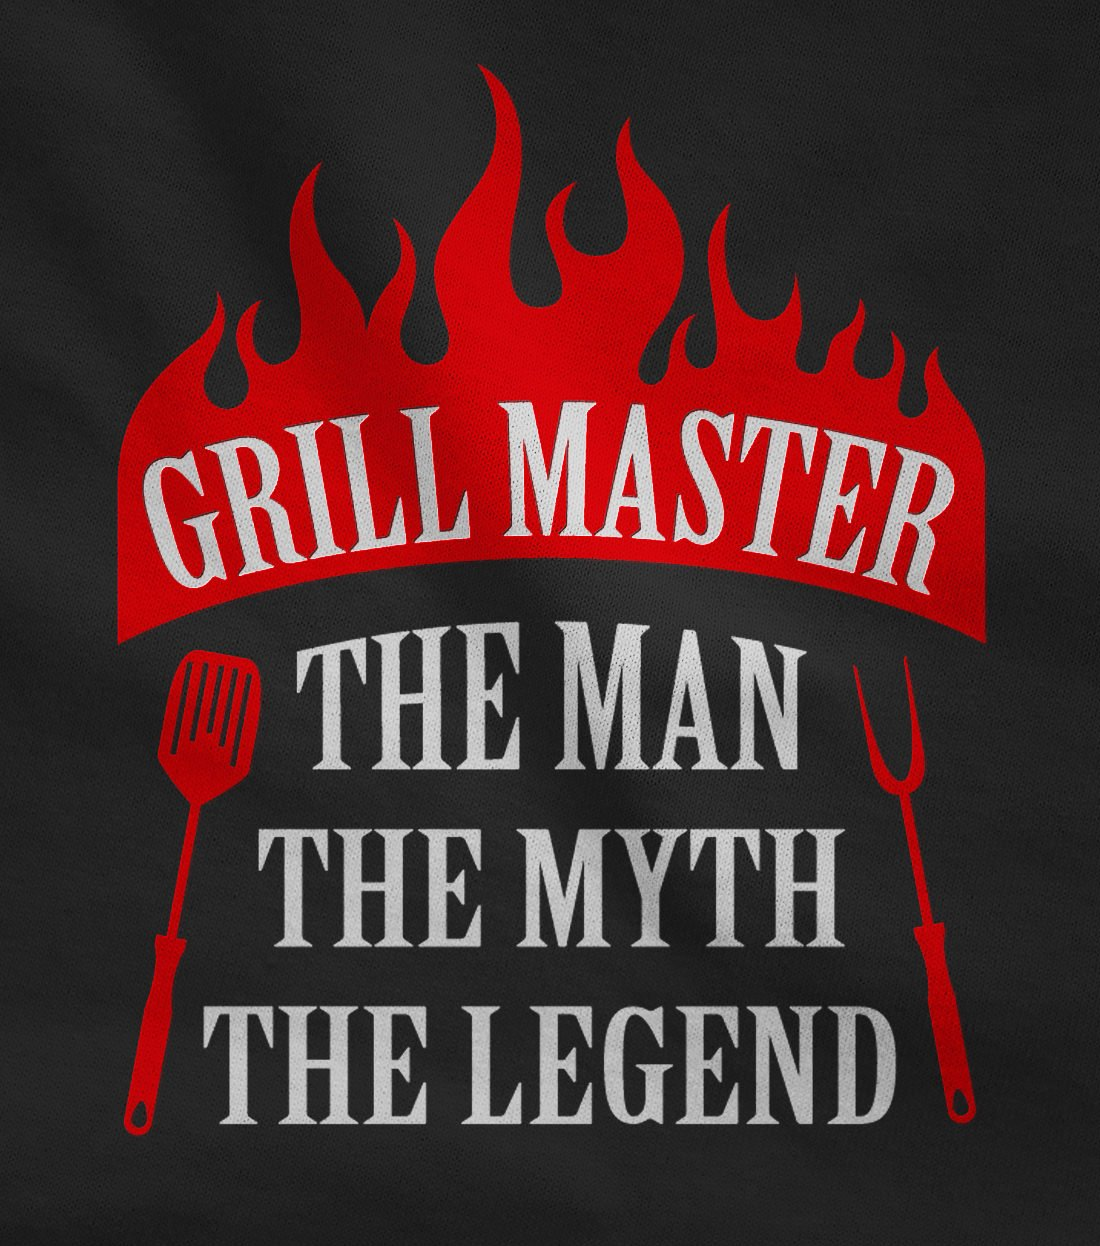 Grill Master The Man The Myth The Legend Griller Gift Idea Funny BBQ Chef Apron One Size Black by TeeStars (Image #3)